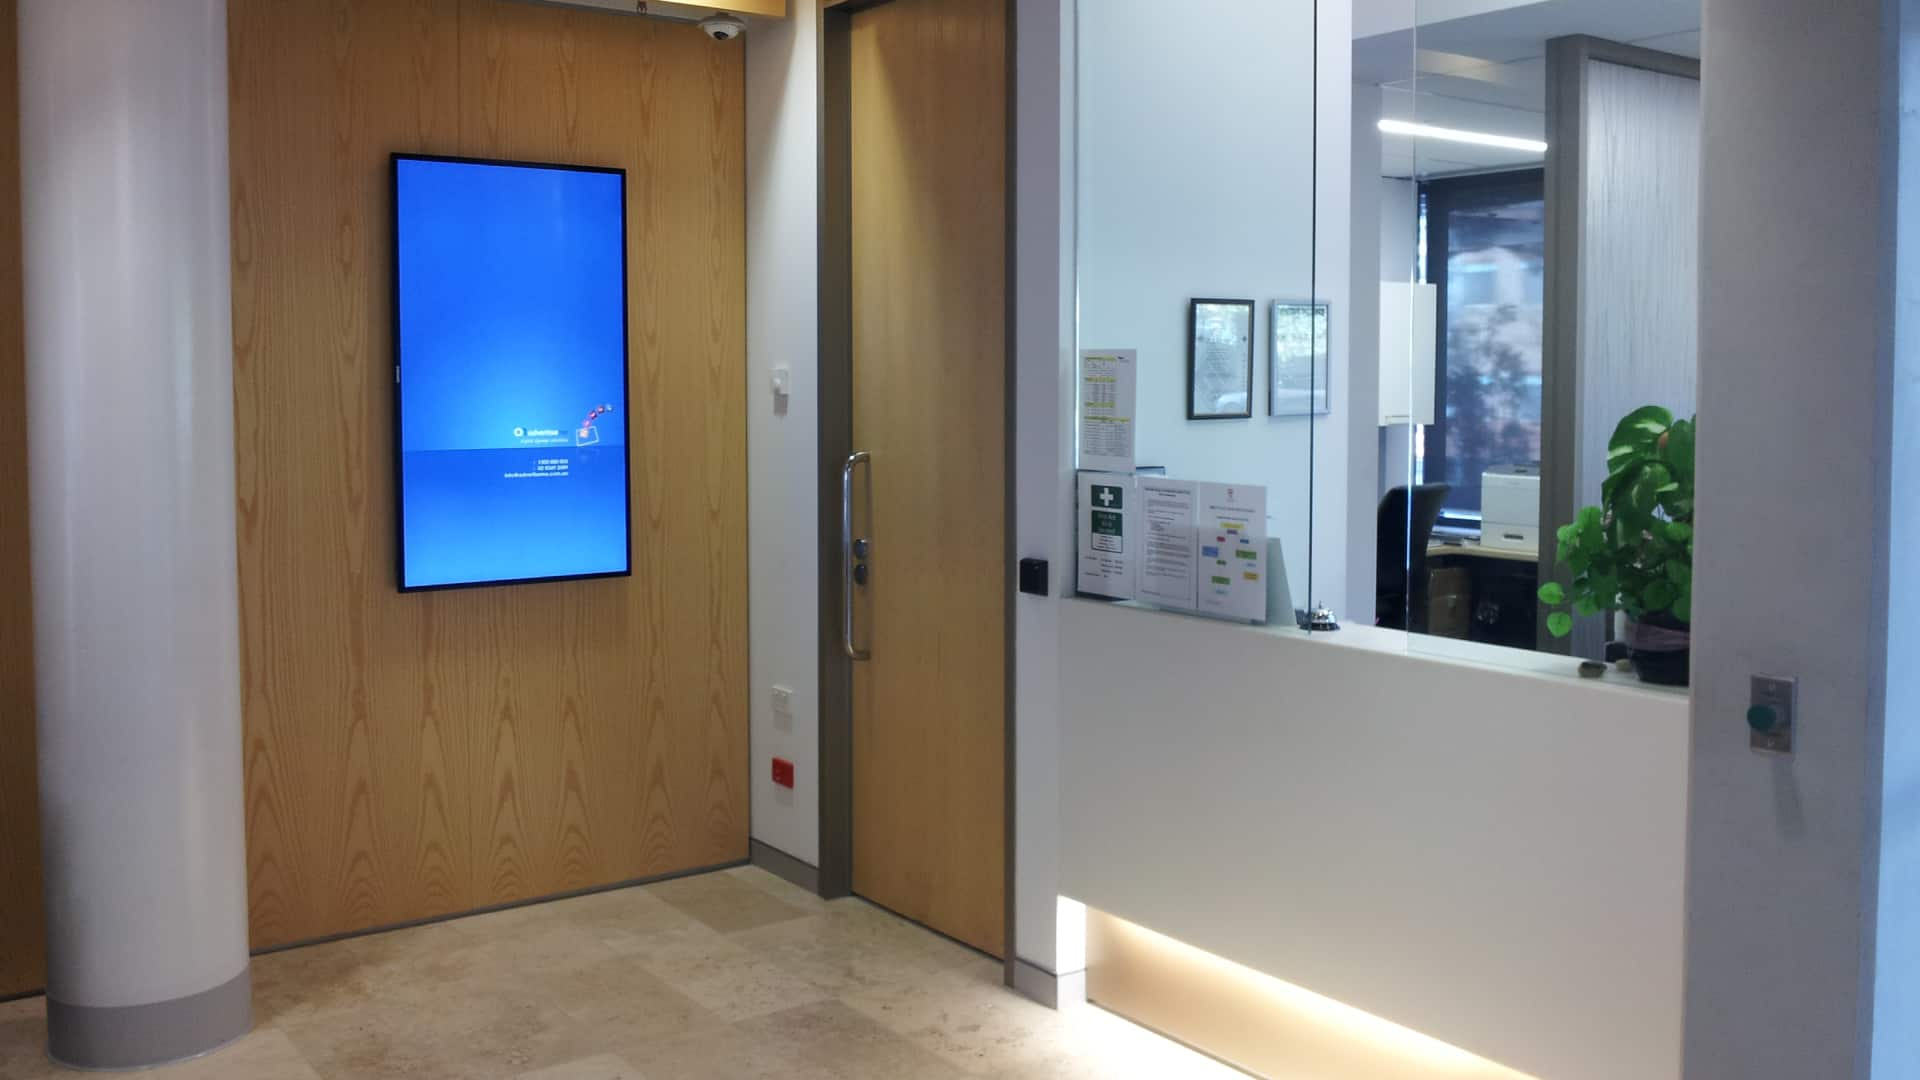 Digital Signage – Ingham Institute Welcome Boards